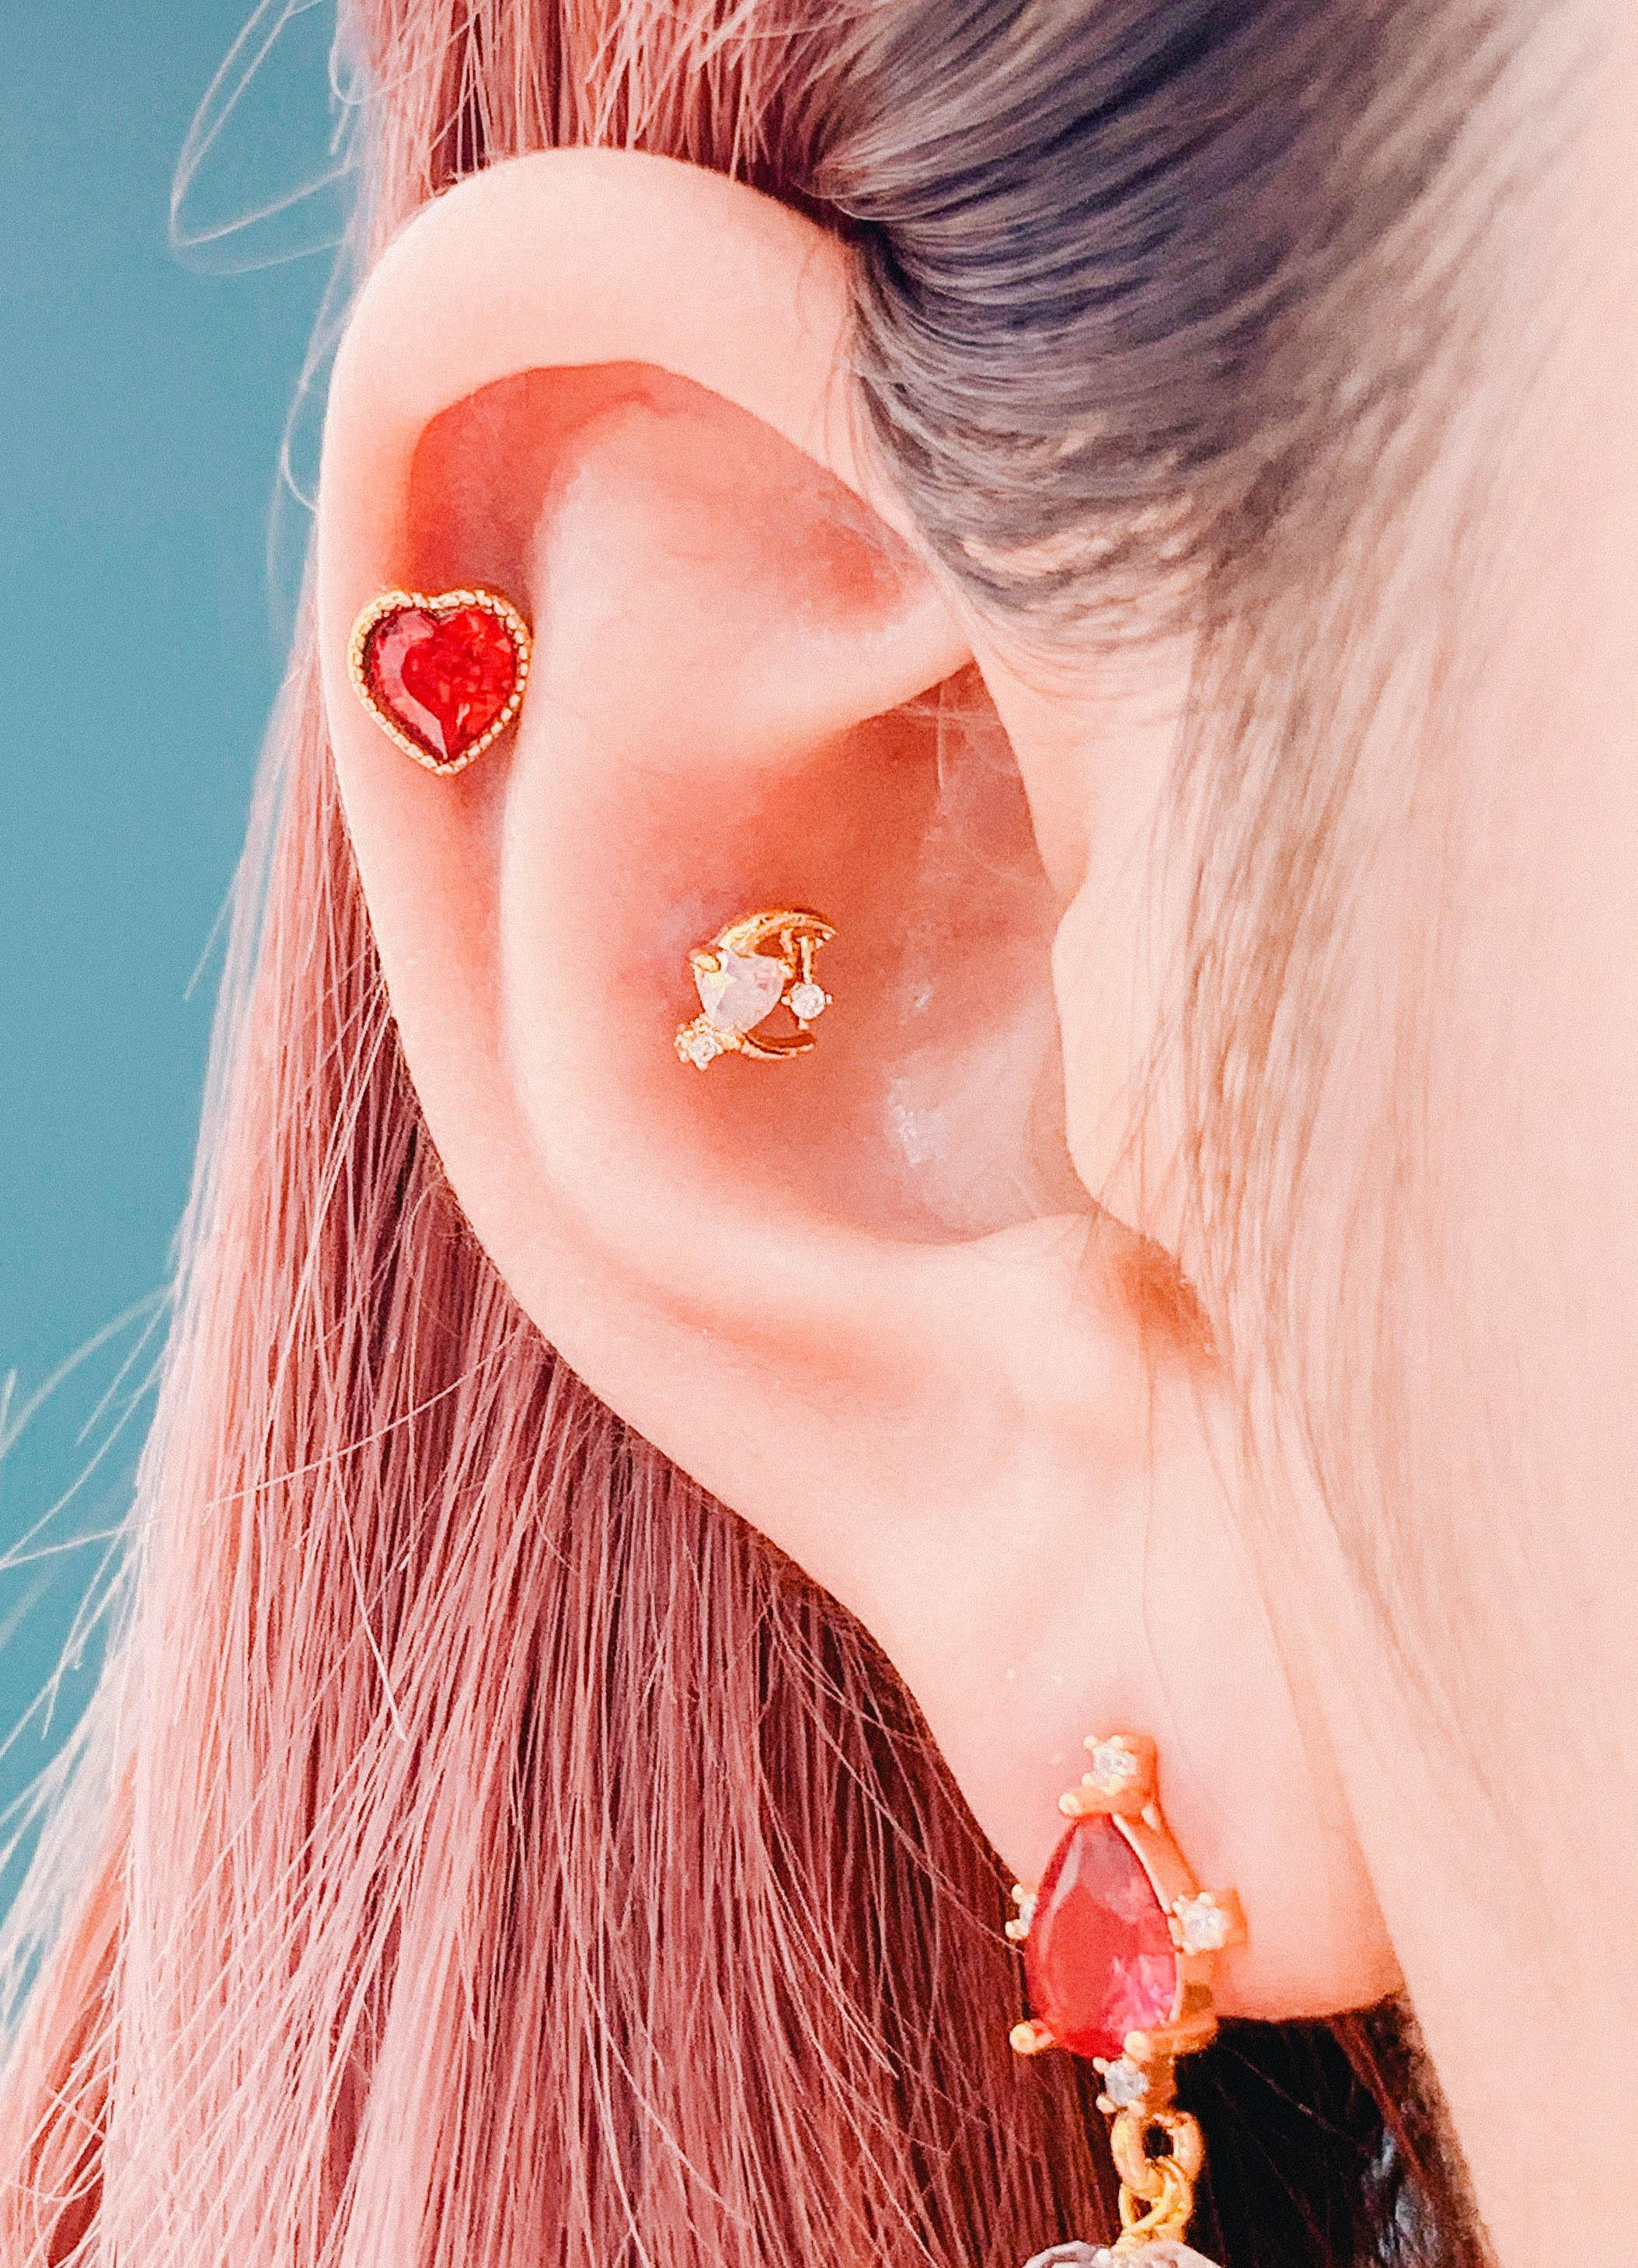 Red Land (ピアス/ピアッシング) Piercing anything else